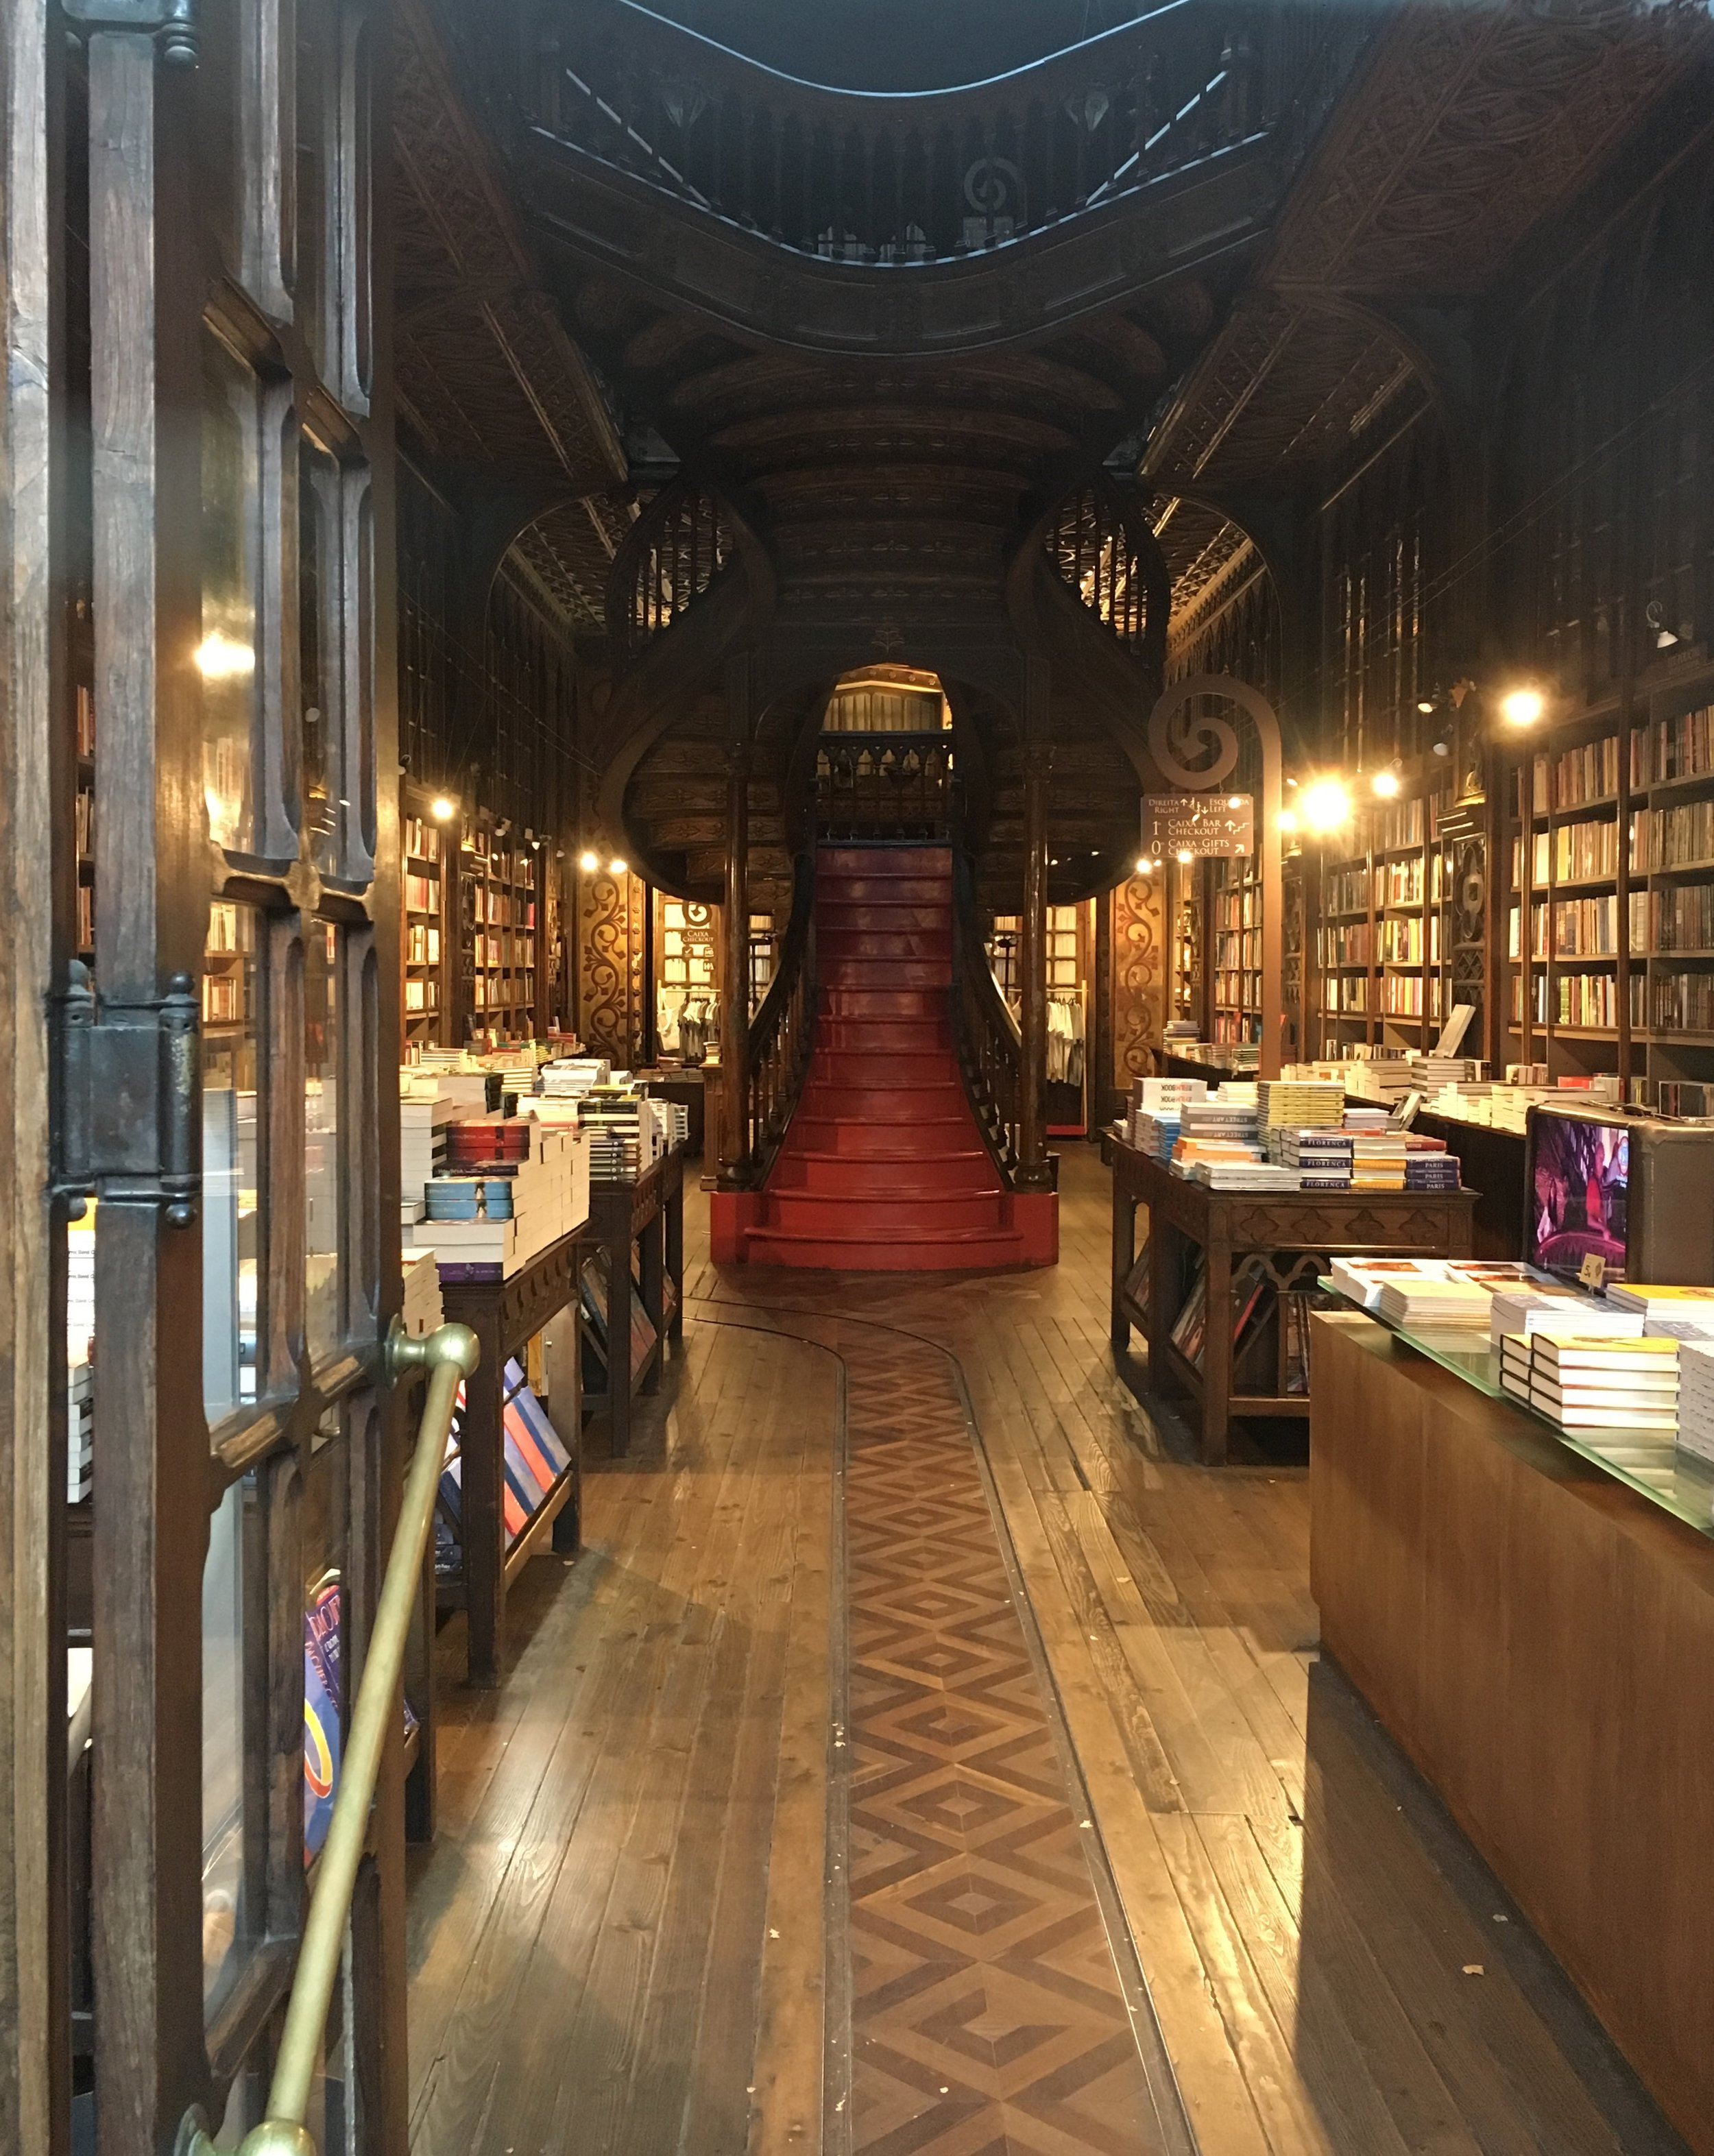 Rumor has it this old bookstore, Livraria Lello, inspired J.K. Rowling.